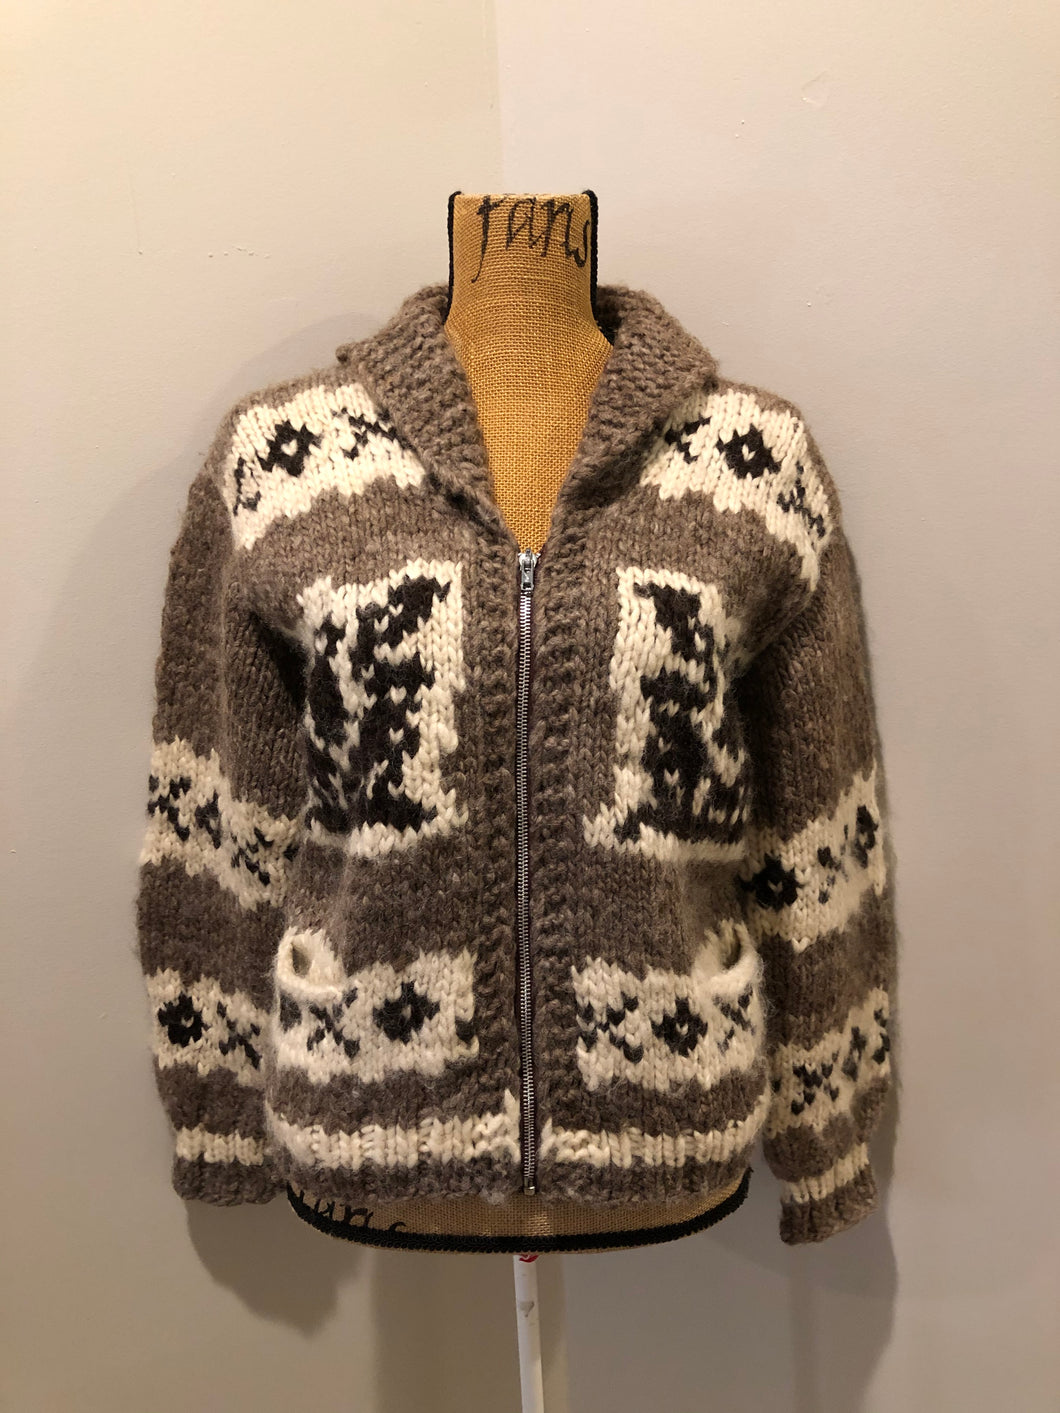 Cowichan style hand spun and hand knit wool zip cardigan in taupe brown, beige, white and dark brown with thunderbird design, shawl collar, zipper and pockets.